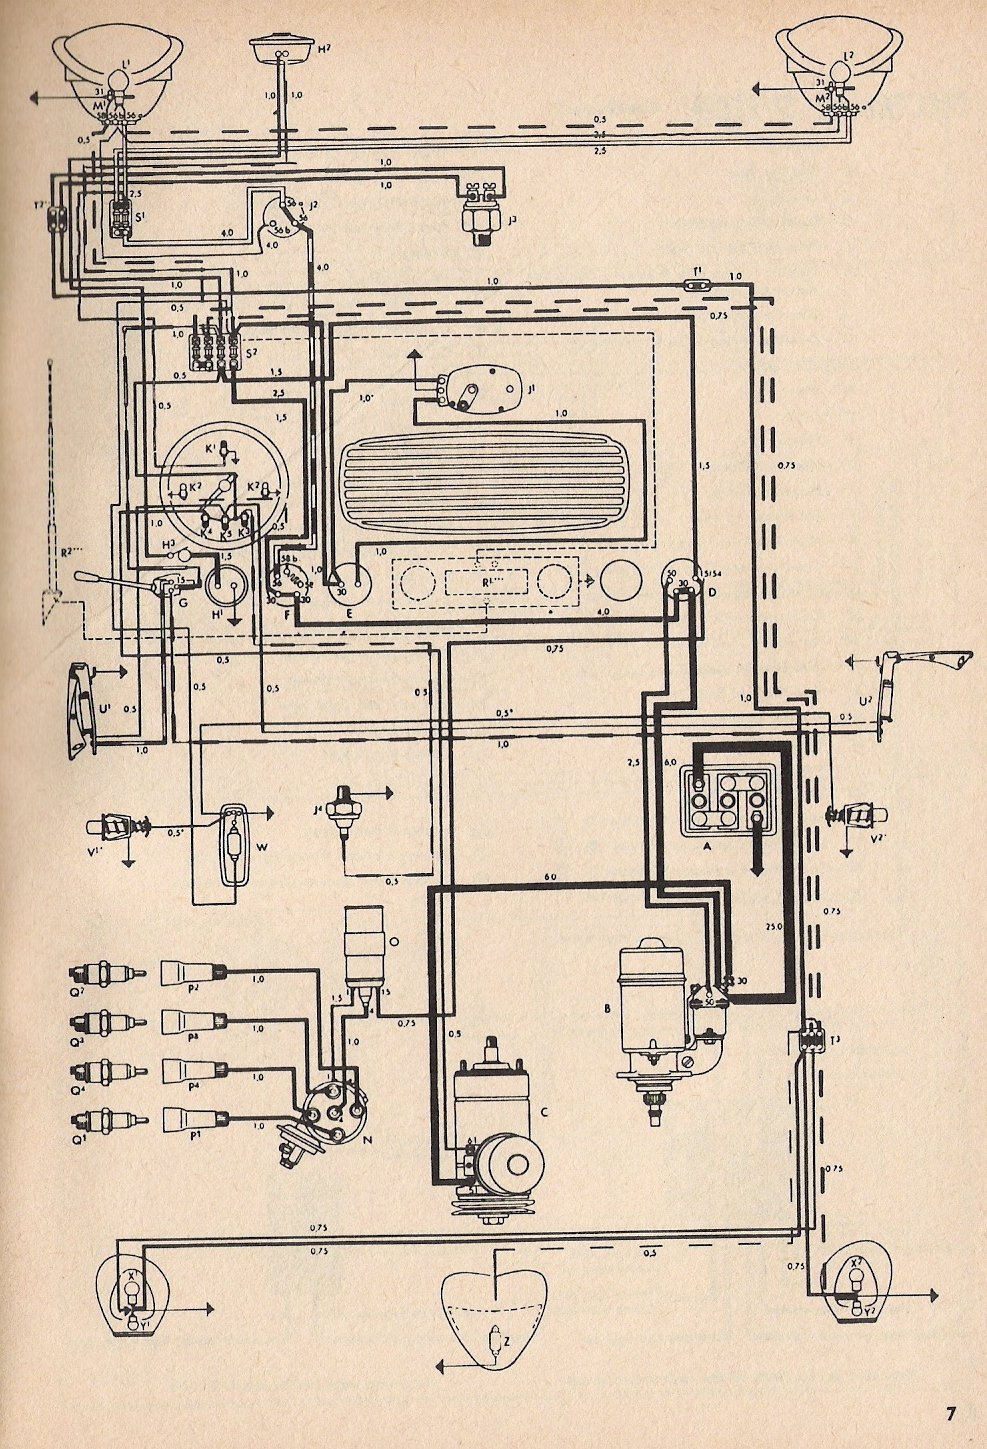 thesamba com type 1 wiring diagrams rh thesamba com 1971 vw bug wiring diagram 1971 vw transporter wiring diagram